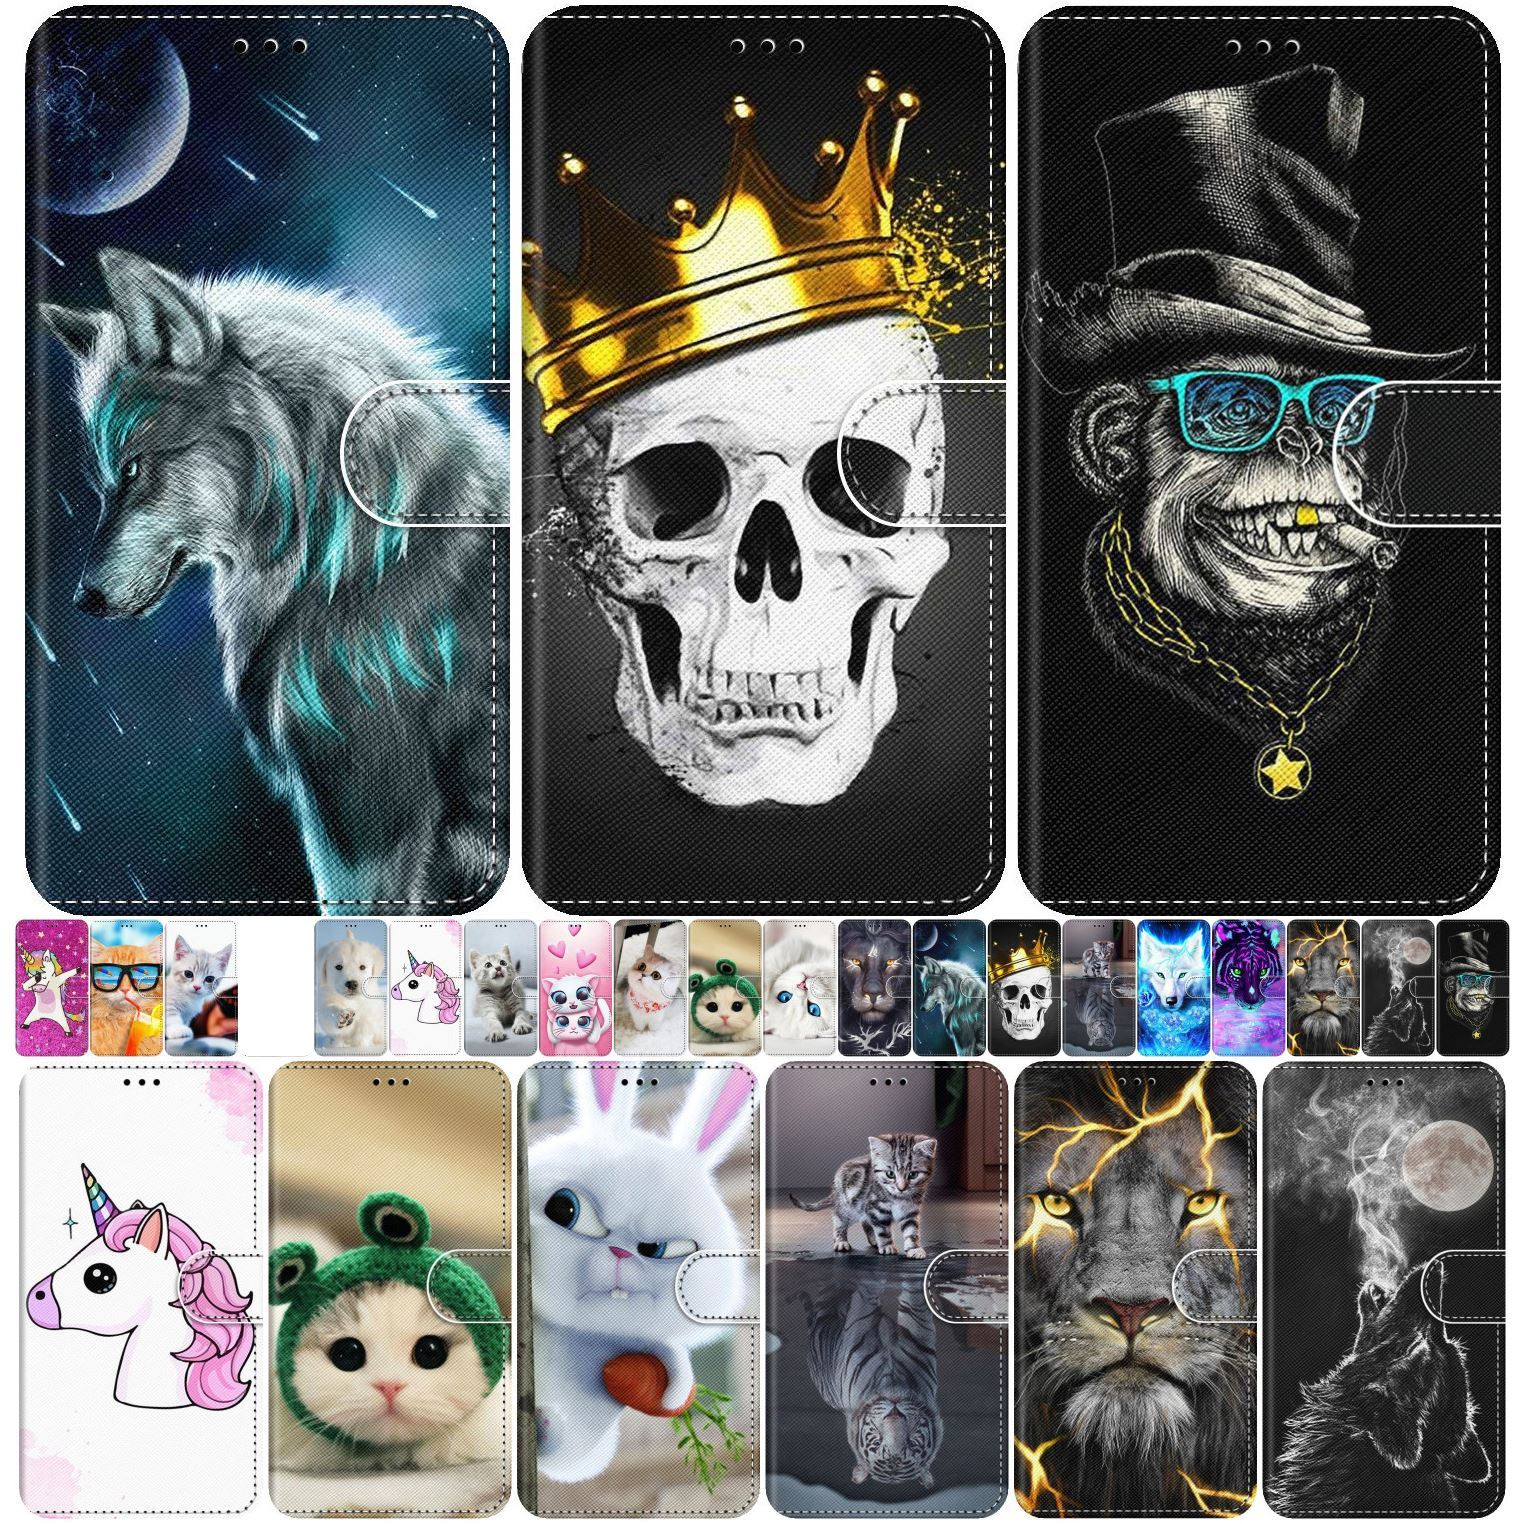 Cute Animal Box <font><b>Flip</b></font> Leather Case For <font><b>Cover</b></font> <font><b>Samsung</b></font> Galaxy A3 2015 A5 2016 A6 A7 <font><b>A8</b></font> 2018 A9 Star Pro A750 A530 A520 A510 S5 P08F image